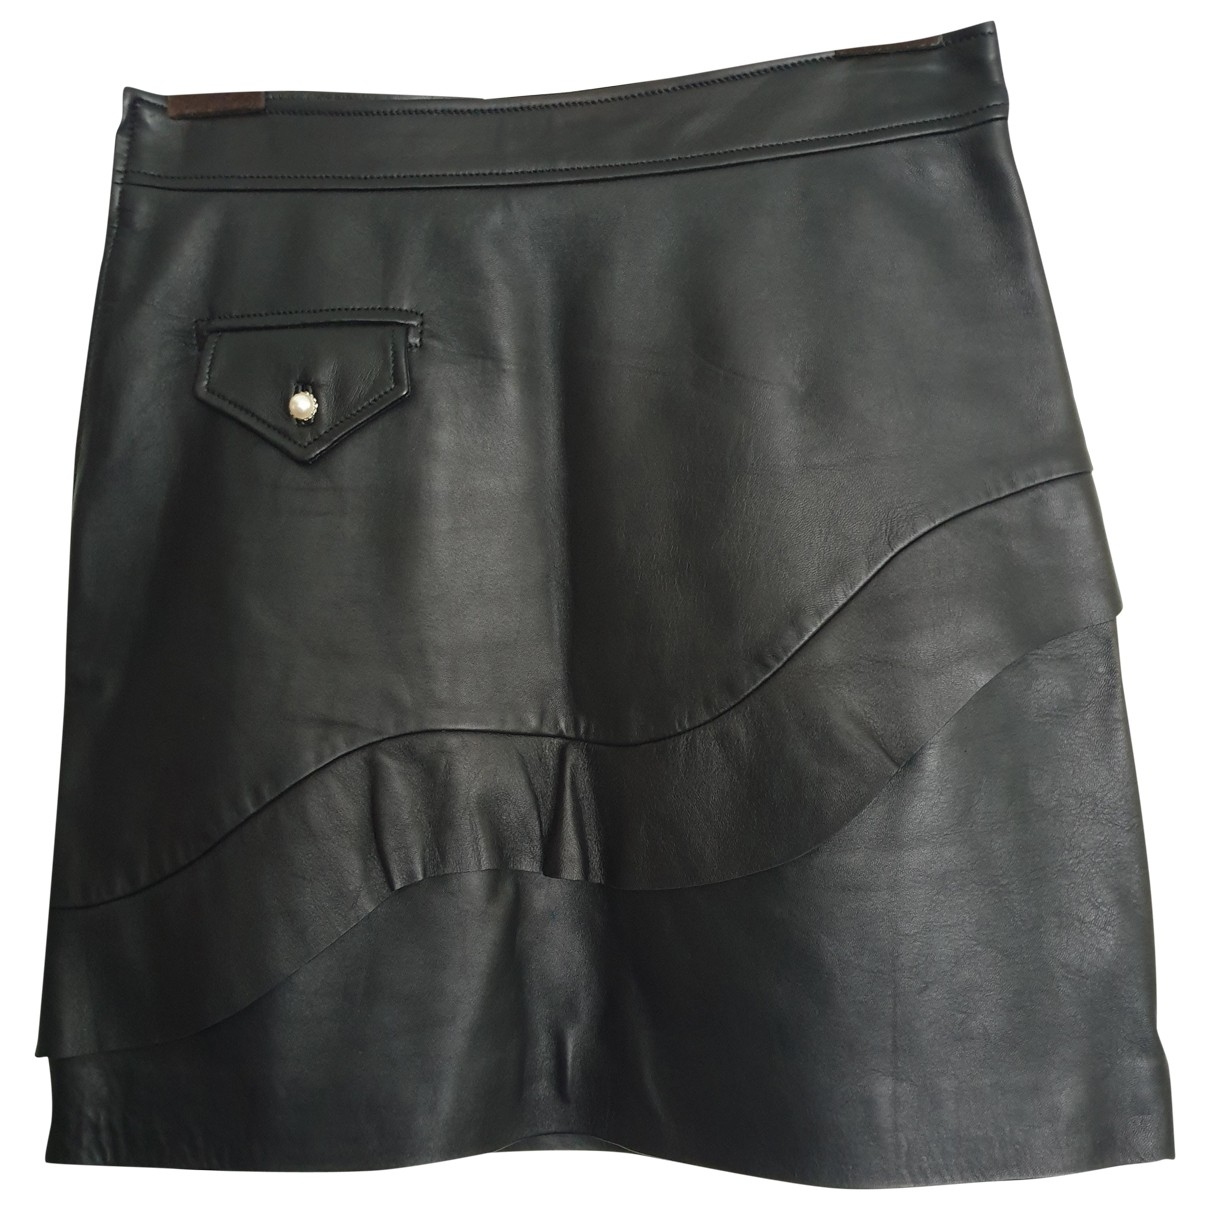 Sandro \N Black Leather skirt for Women 2 0-5